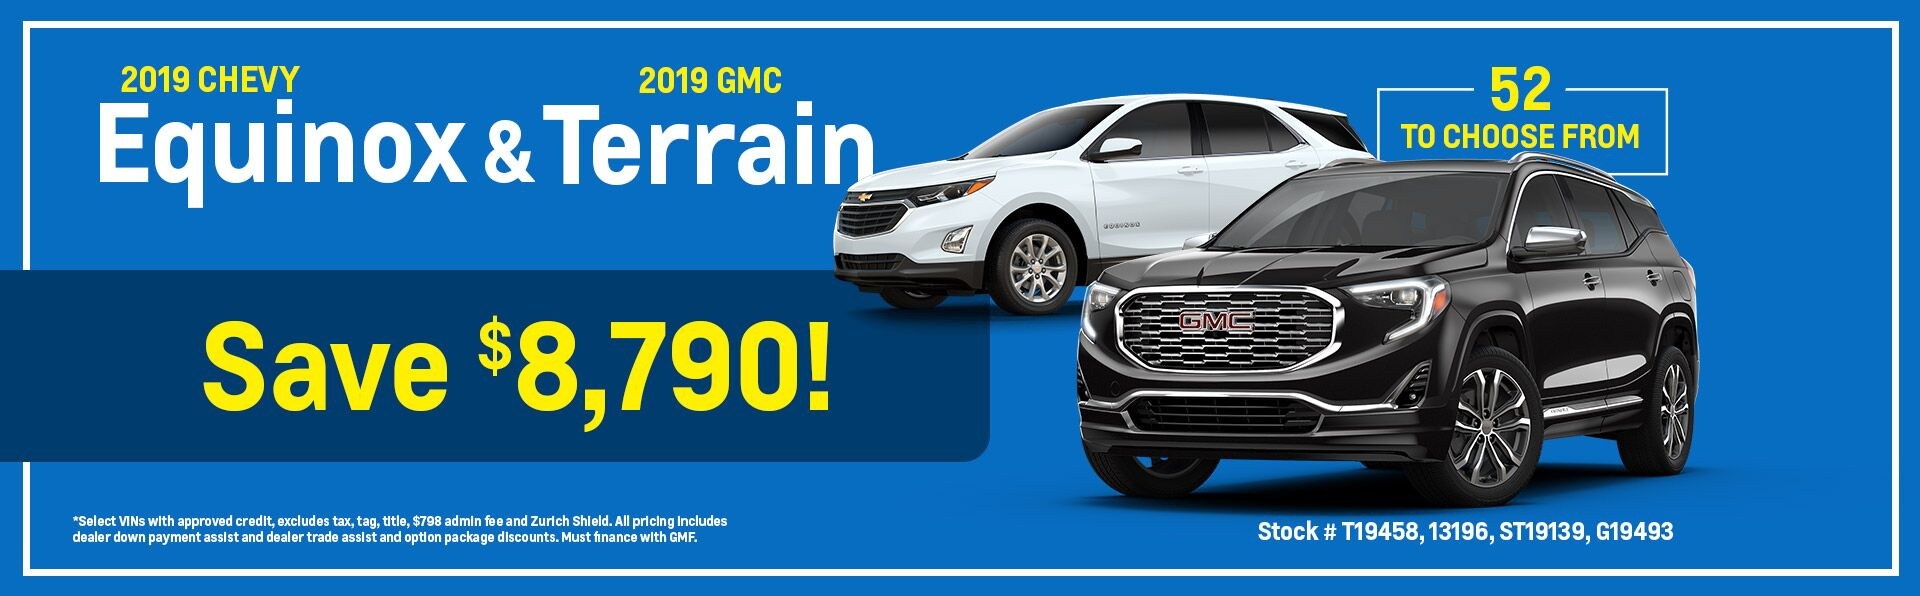 2019 Chevy Equinox and 2019 GMC Terrain